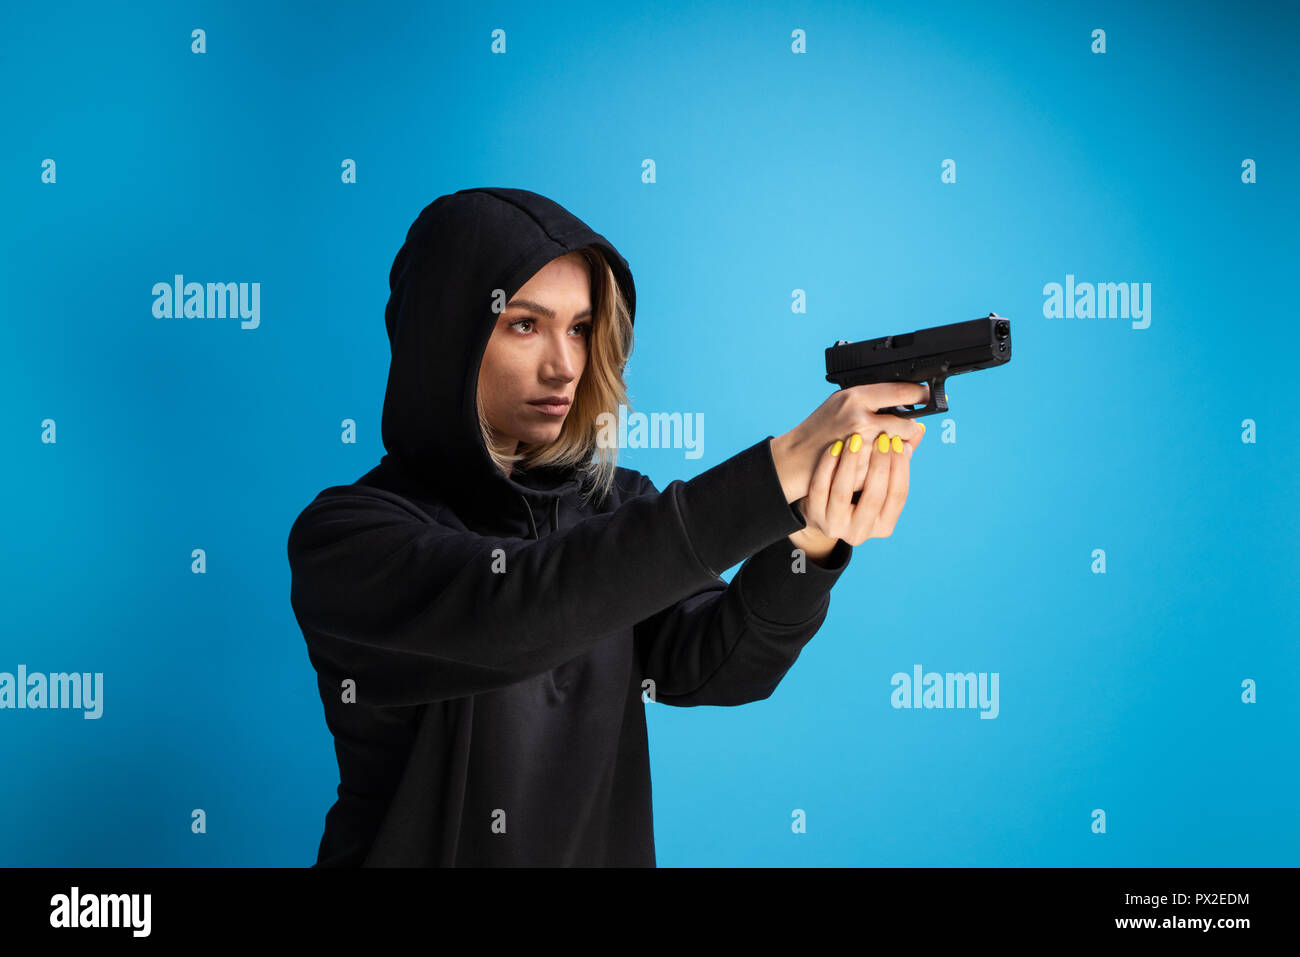 Hooded girl holding a gun pointed to the right side. Criminal face adult gangster - Stock Image